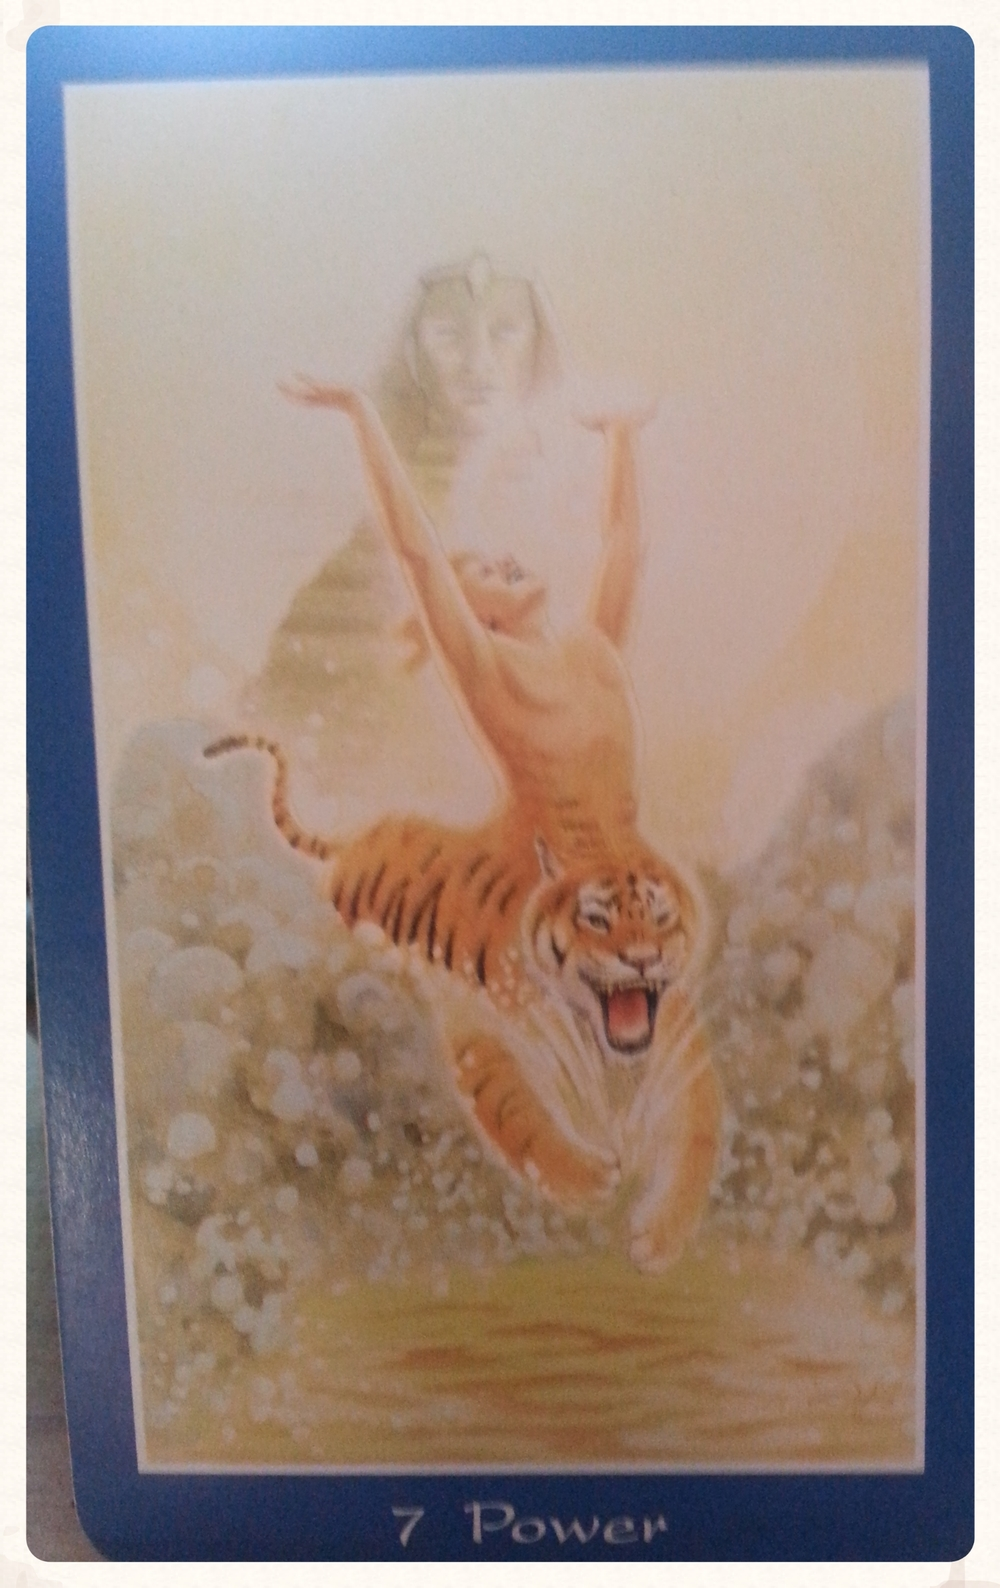 SATURN'S DAY AUGUST 8 TH 2015     CARD 7- POWER- MAJOR ARCANA         SUCCESS, CHANGE, BALANCE